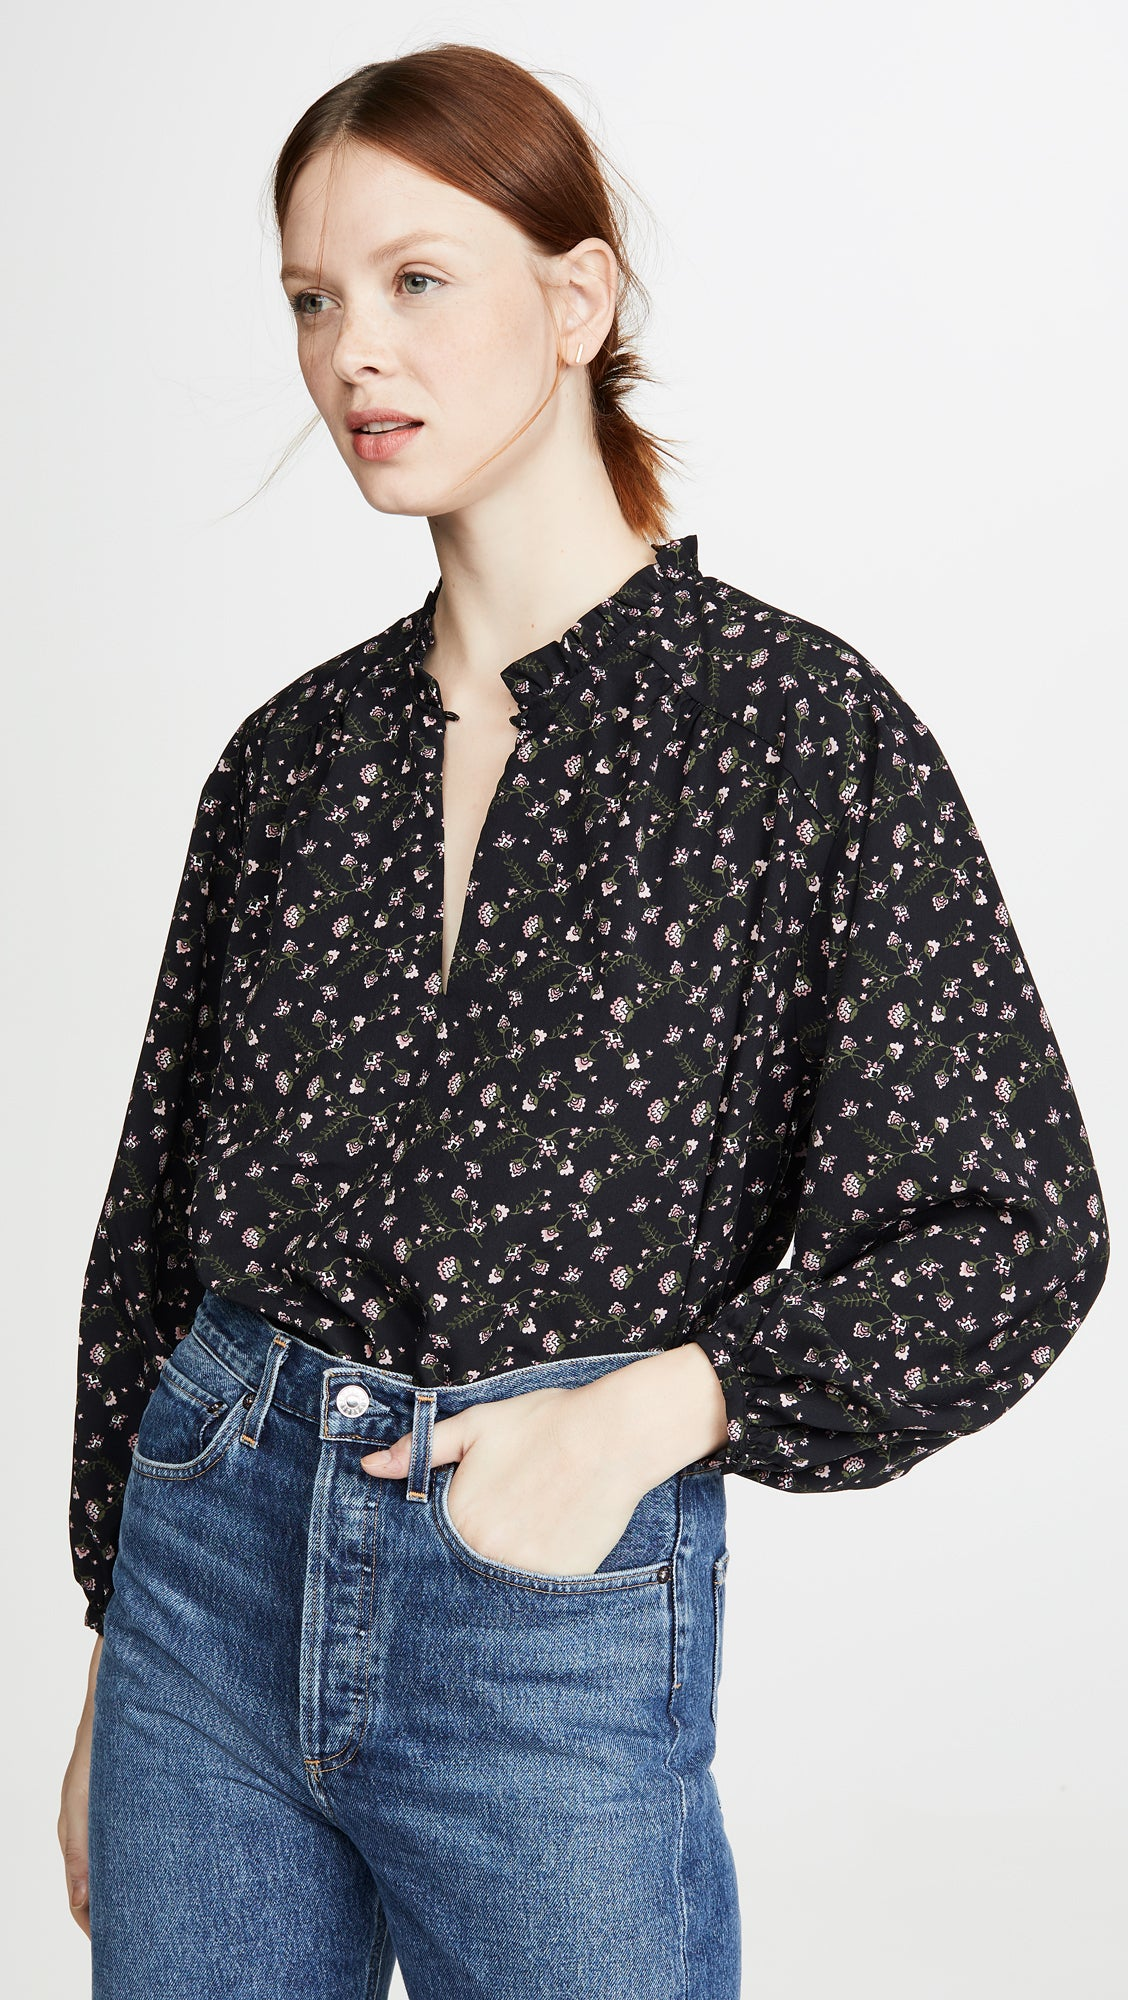 Victoria Top in Black